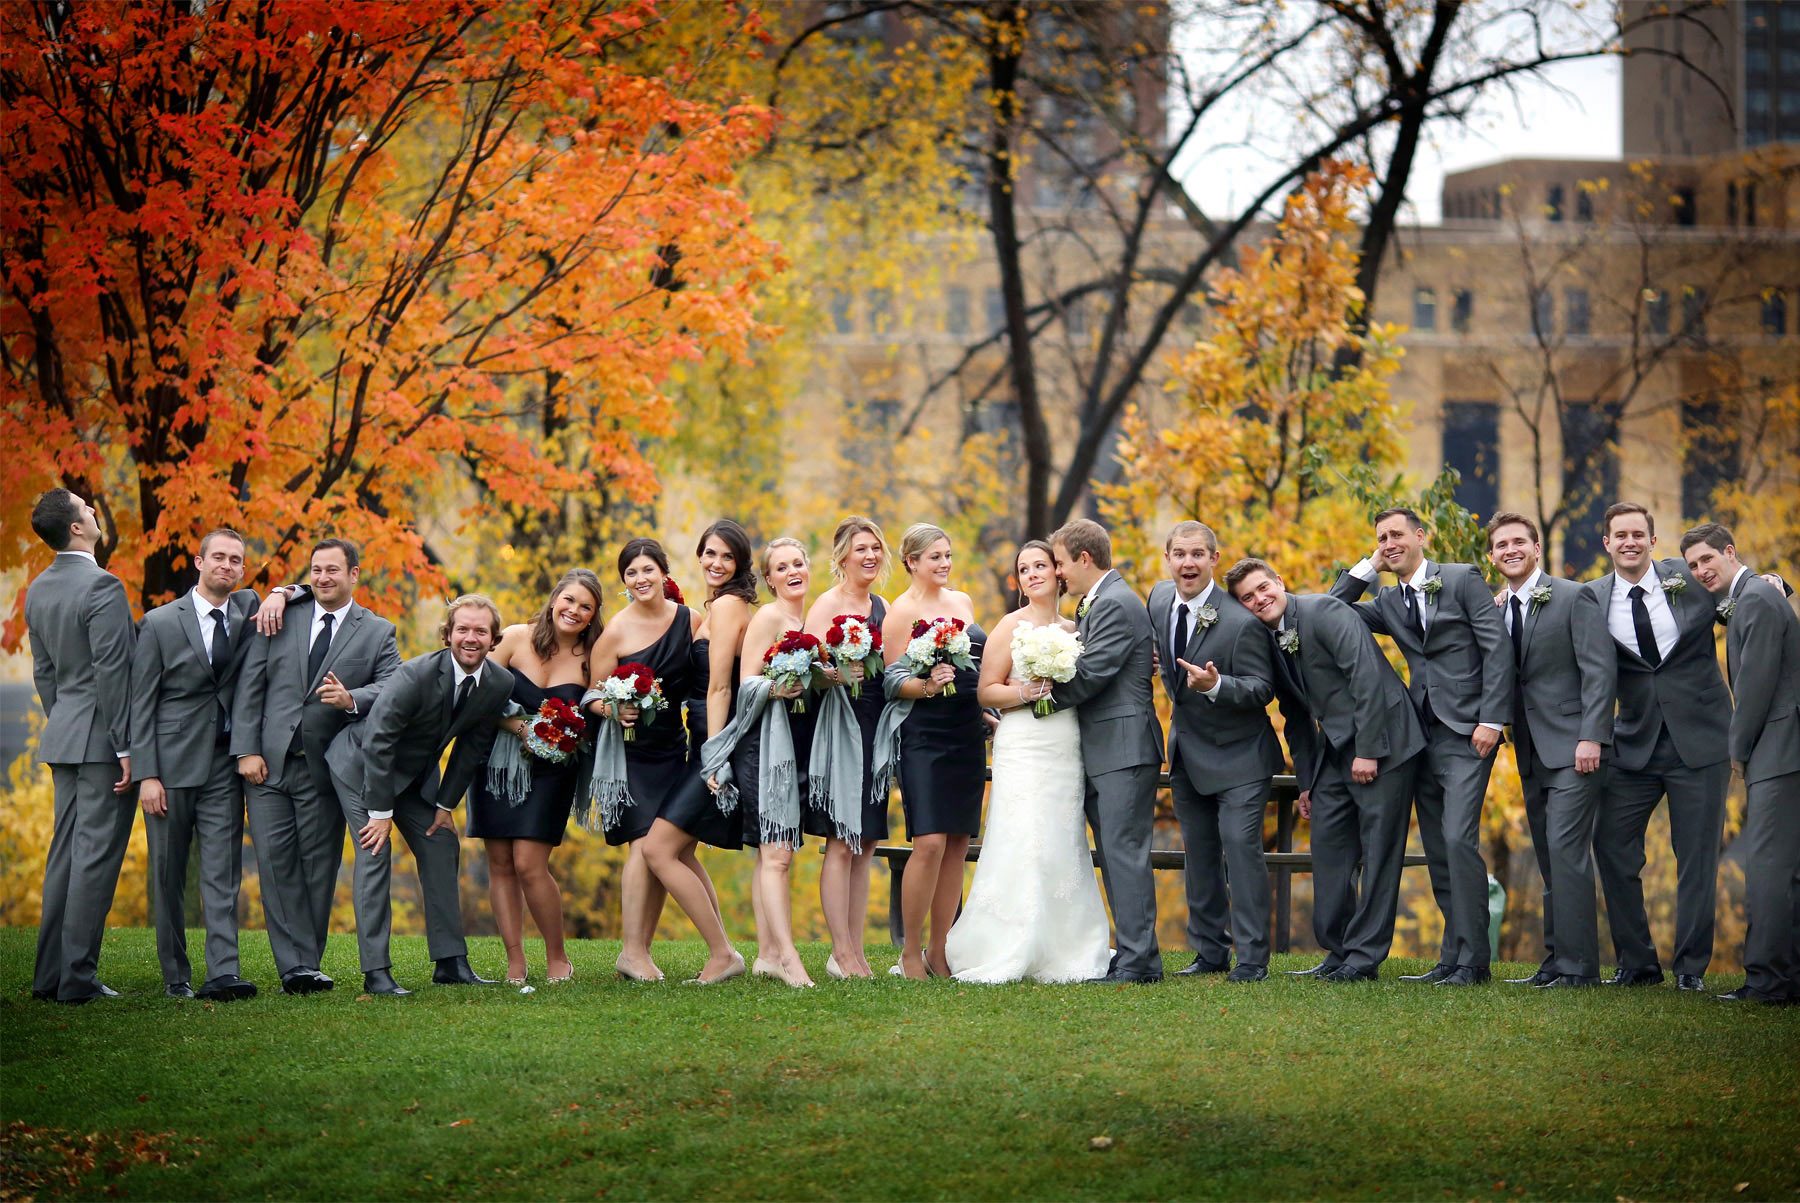 05-Minneapolis-Minnesota-Wedding-Photography-Downtown-Rain-Nicollet-Island-Pavilion-Fall-Colors-Fall-Leaves-Autumn-Wedding-Party-Group-Kalley-and-Ben.jpg